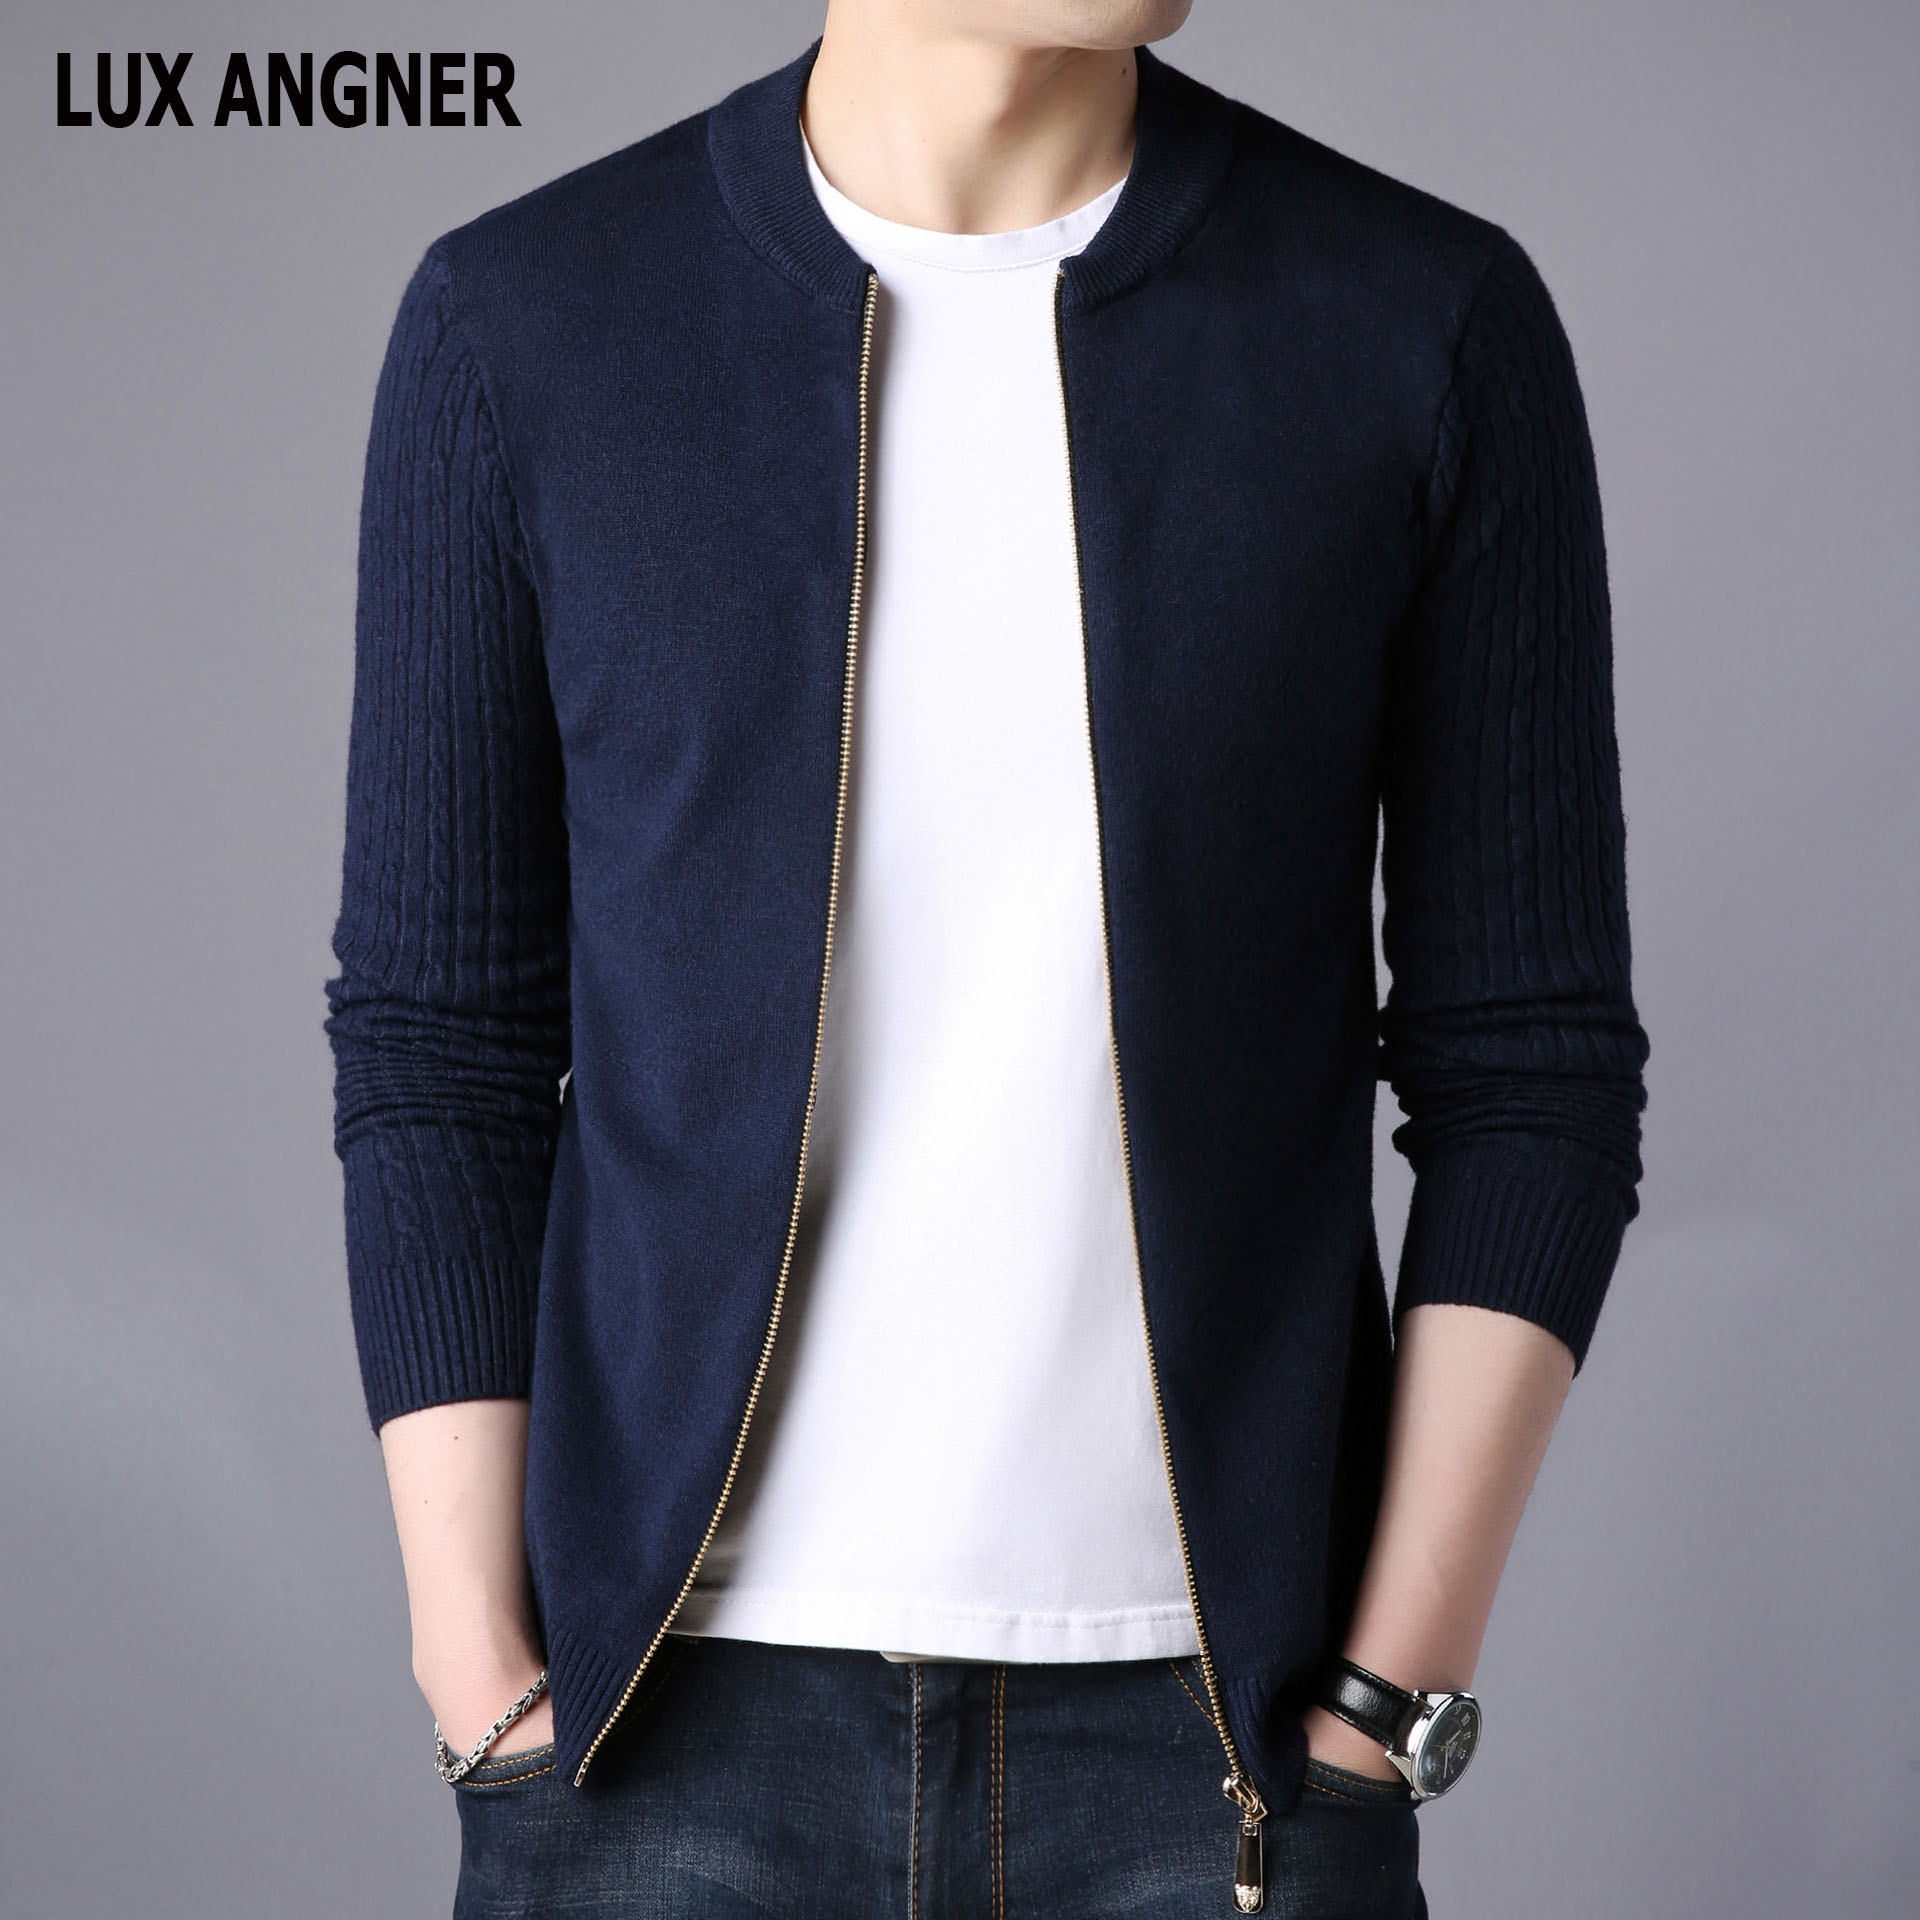 LUX ANGNER Men's Cardigan Sweater Men Long Sleeve Slim Fit Casual Knitted Sweaters 2020 Korean Fashion Men's Clothing Casacos 1